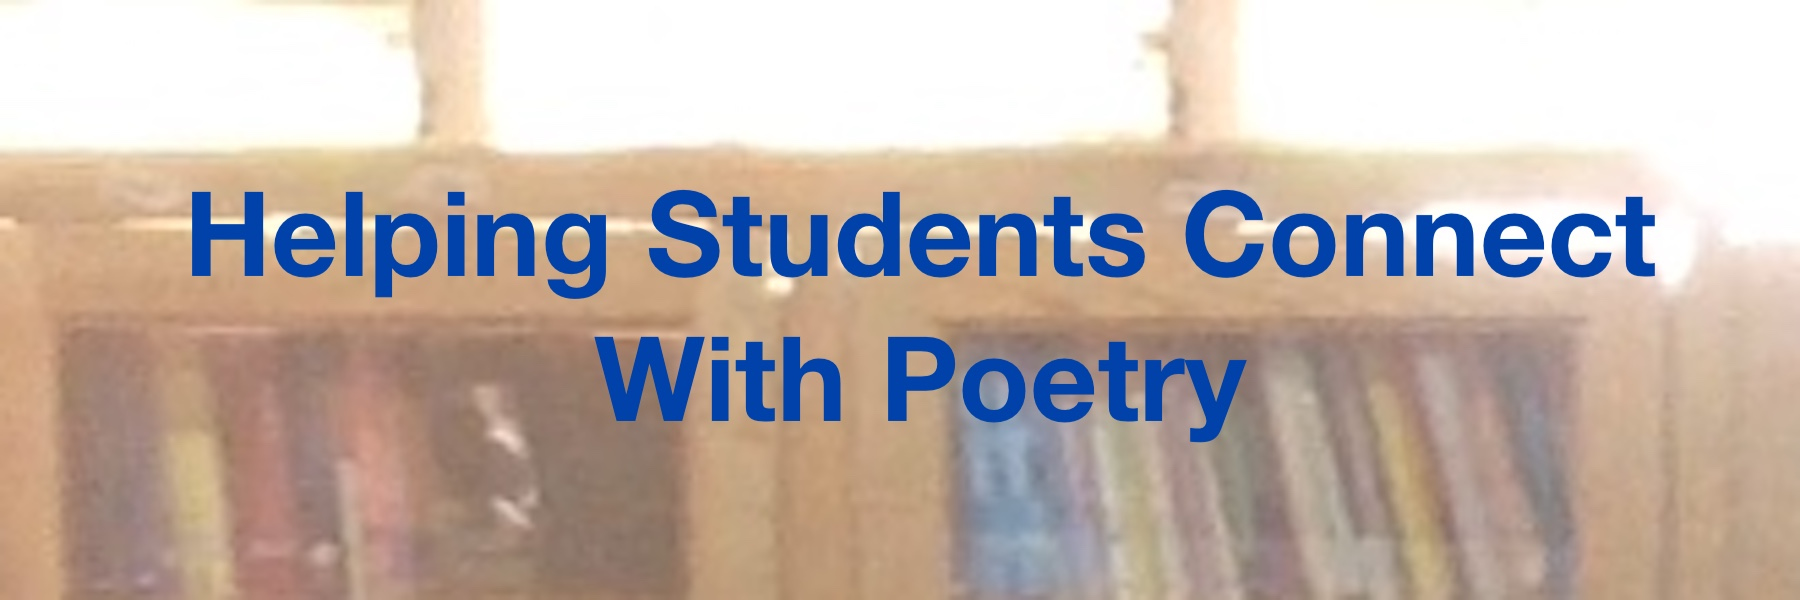 Helping Students Connect With Poetry